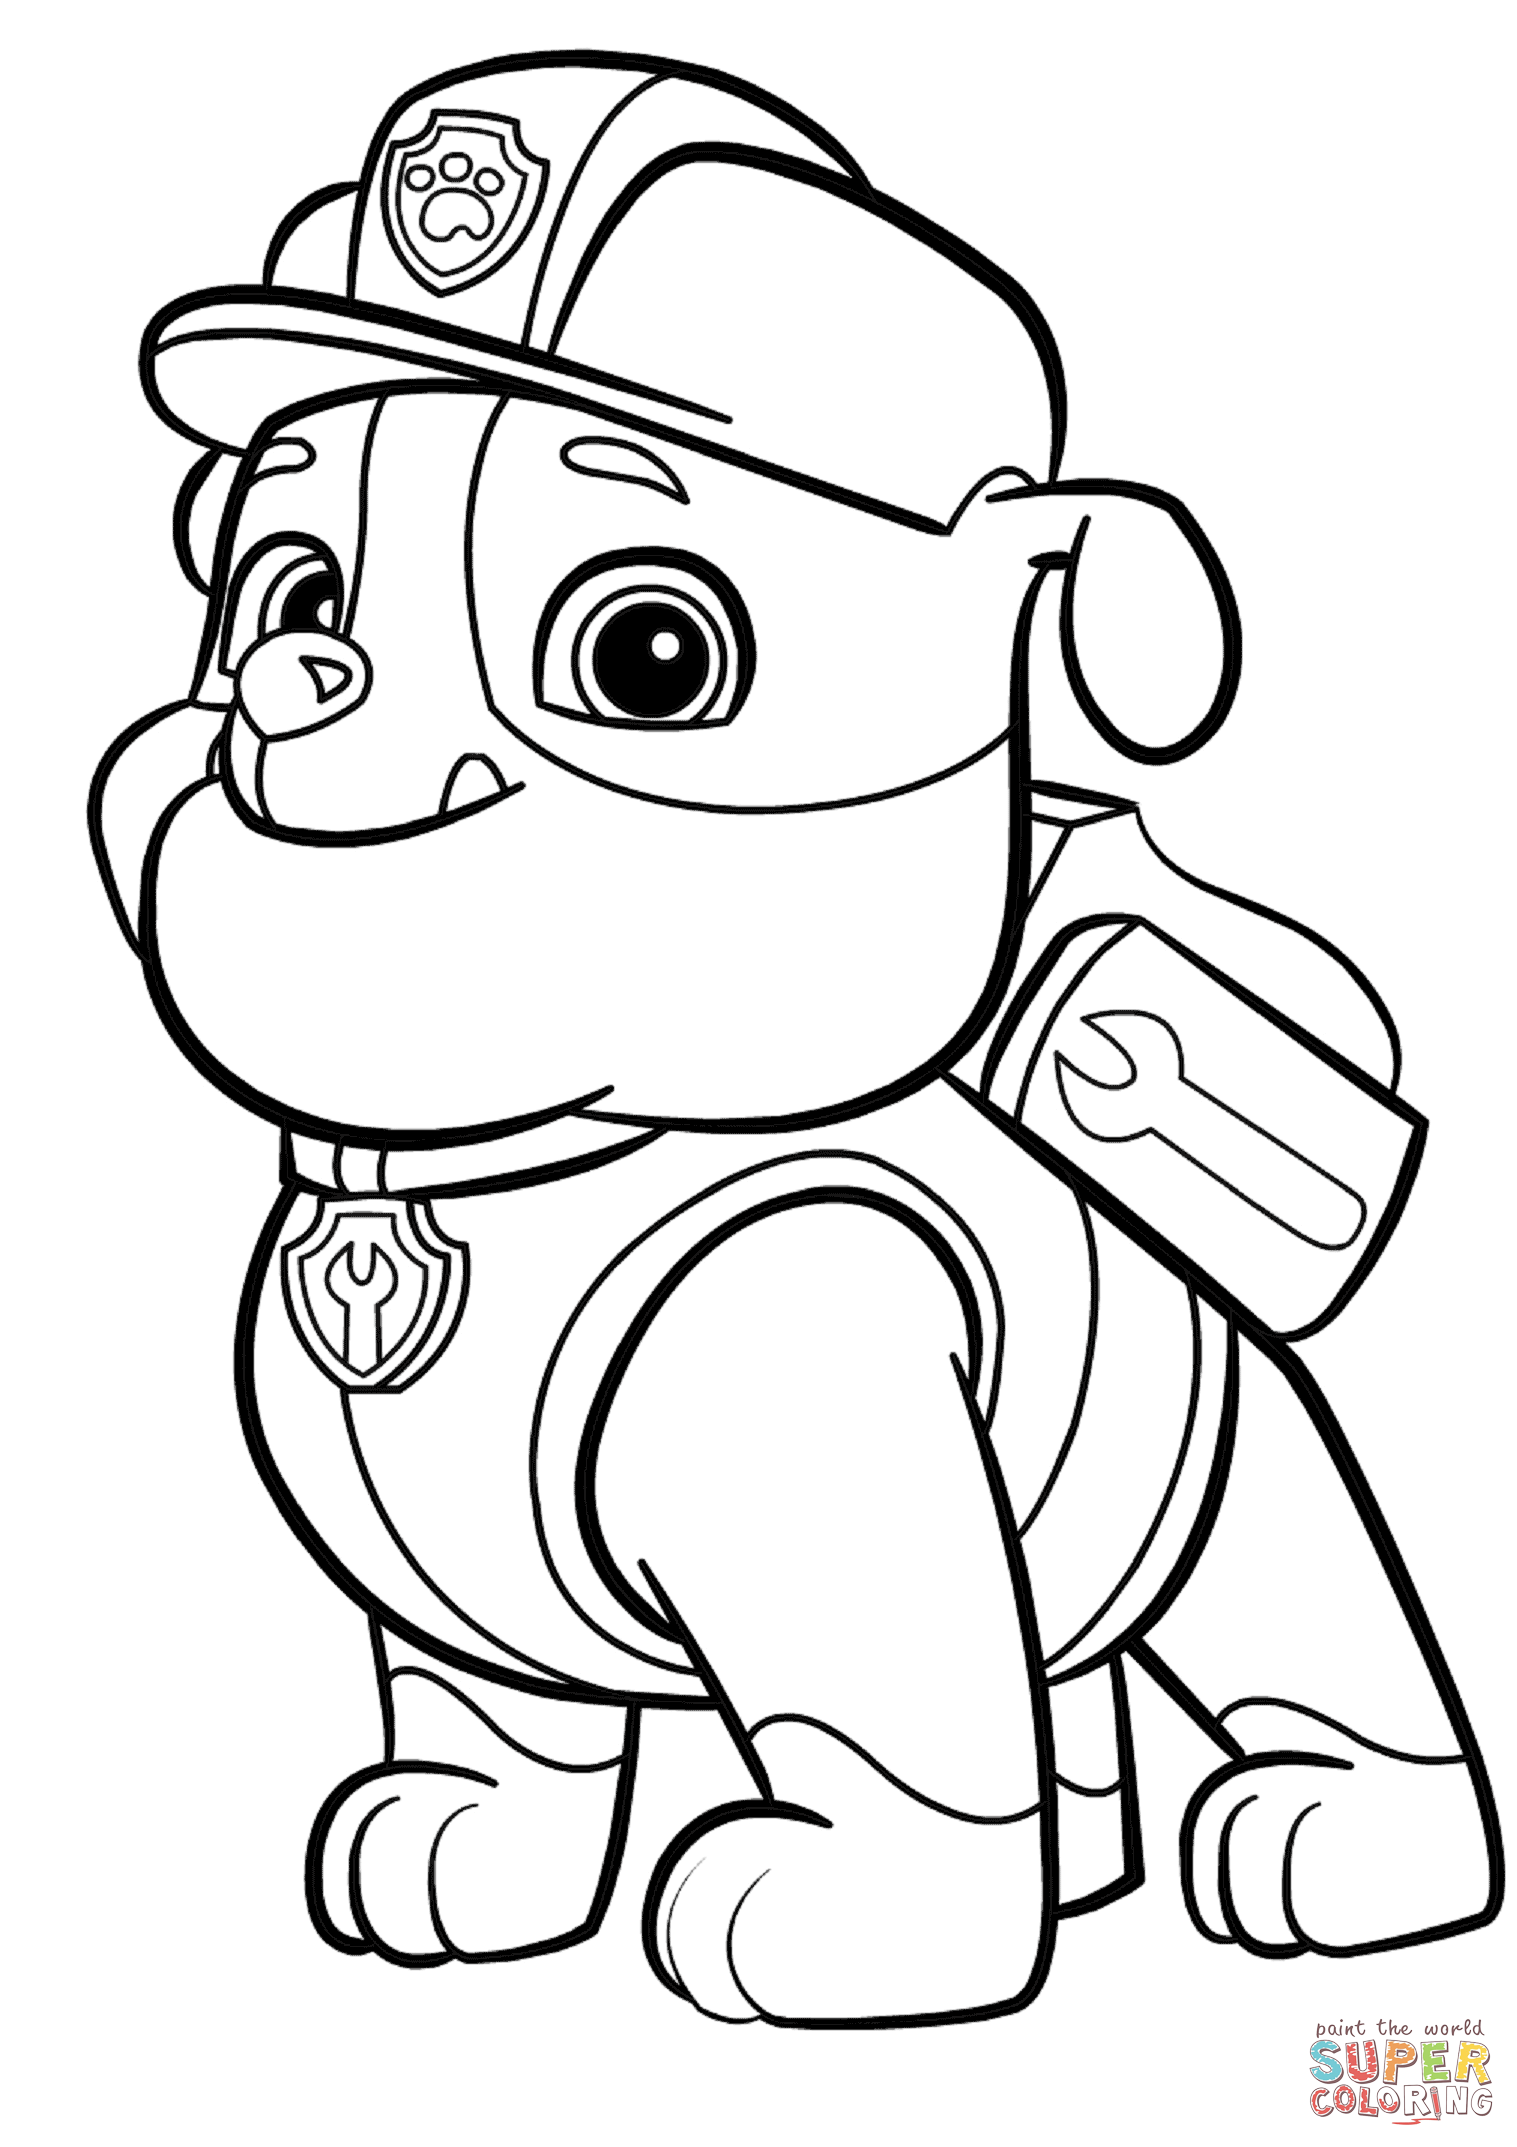 Coloring Pages Paw Patrol Rocky : Paw patrol rocky coloring pages home